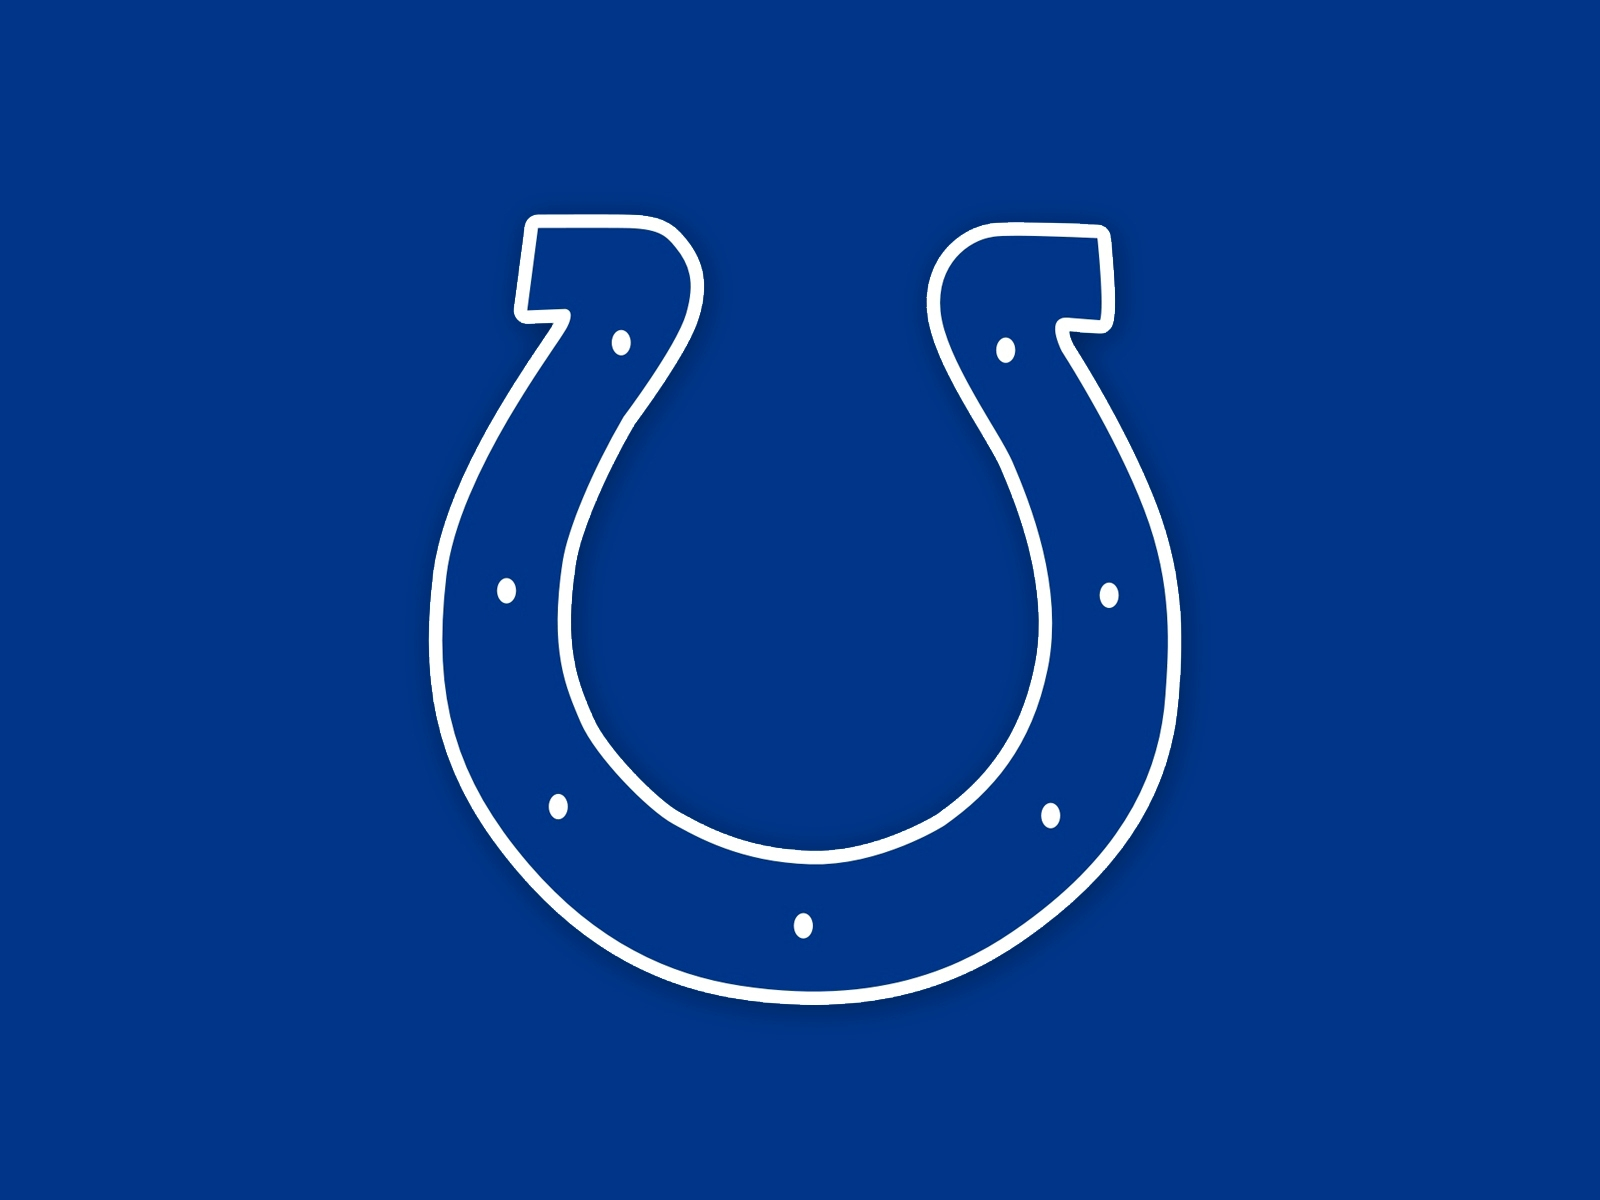 Indianapolis Colts Computer Wallpapers Desktop Backgrounds 1600x1200 1600x1200